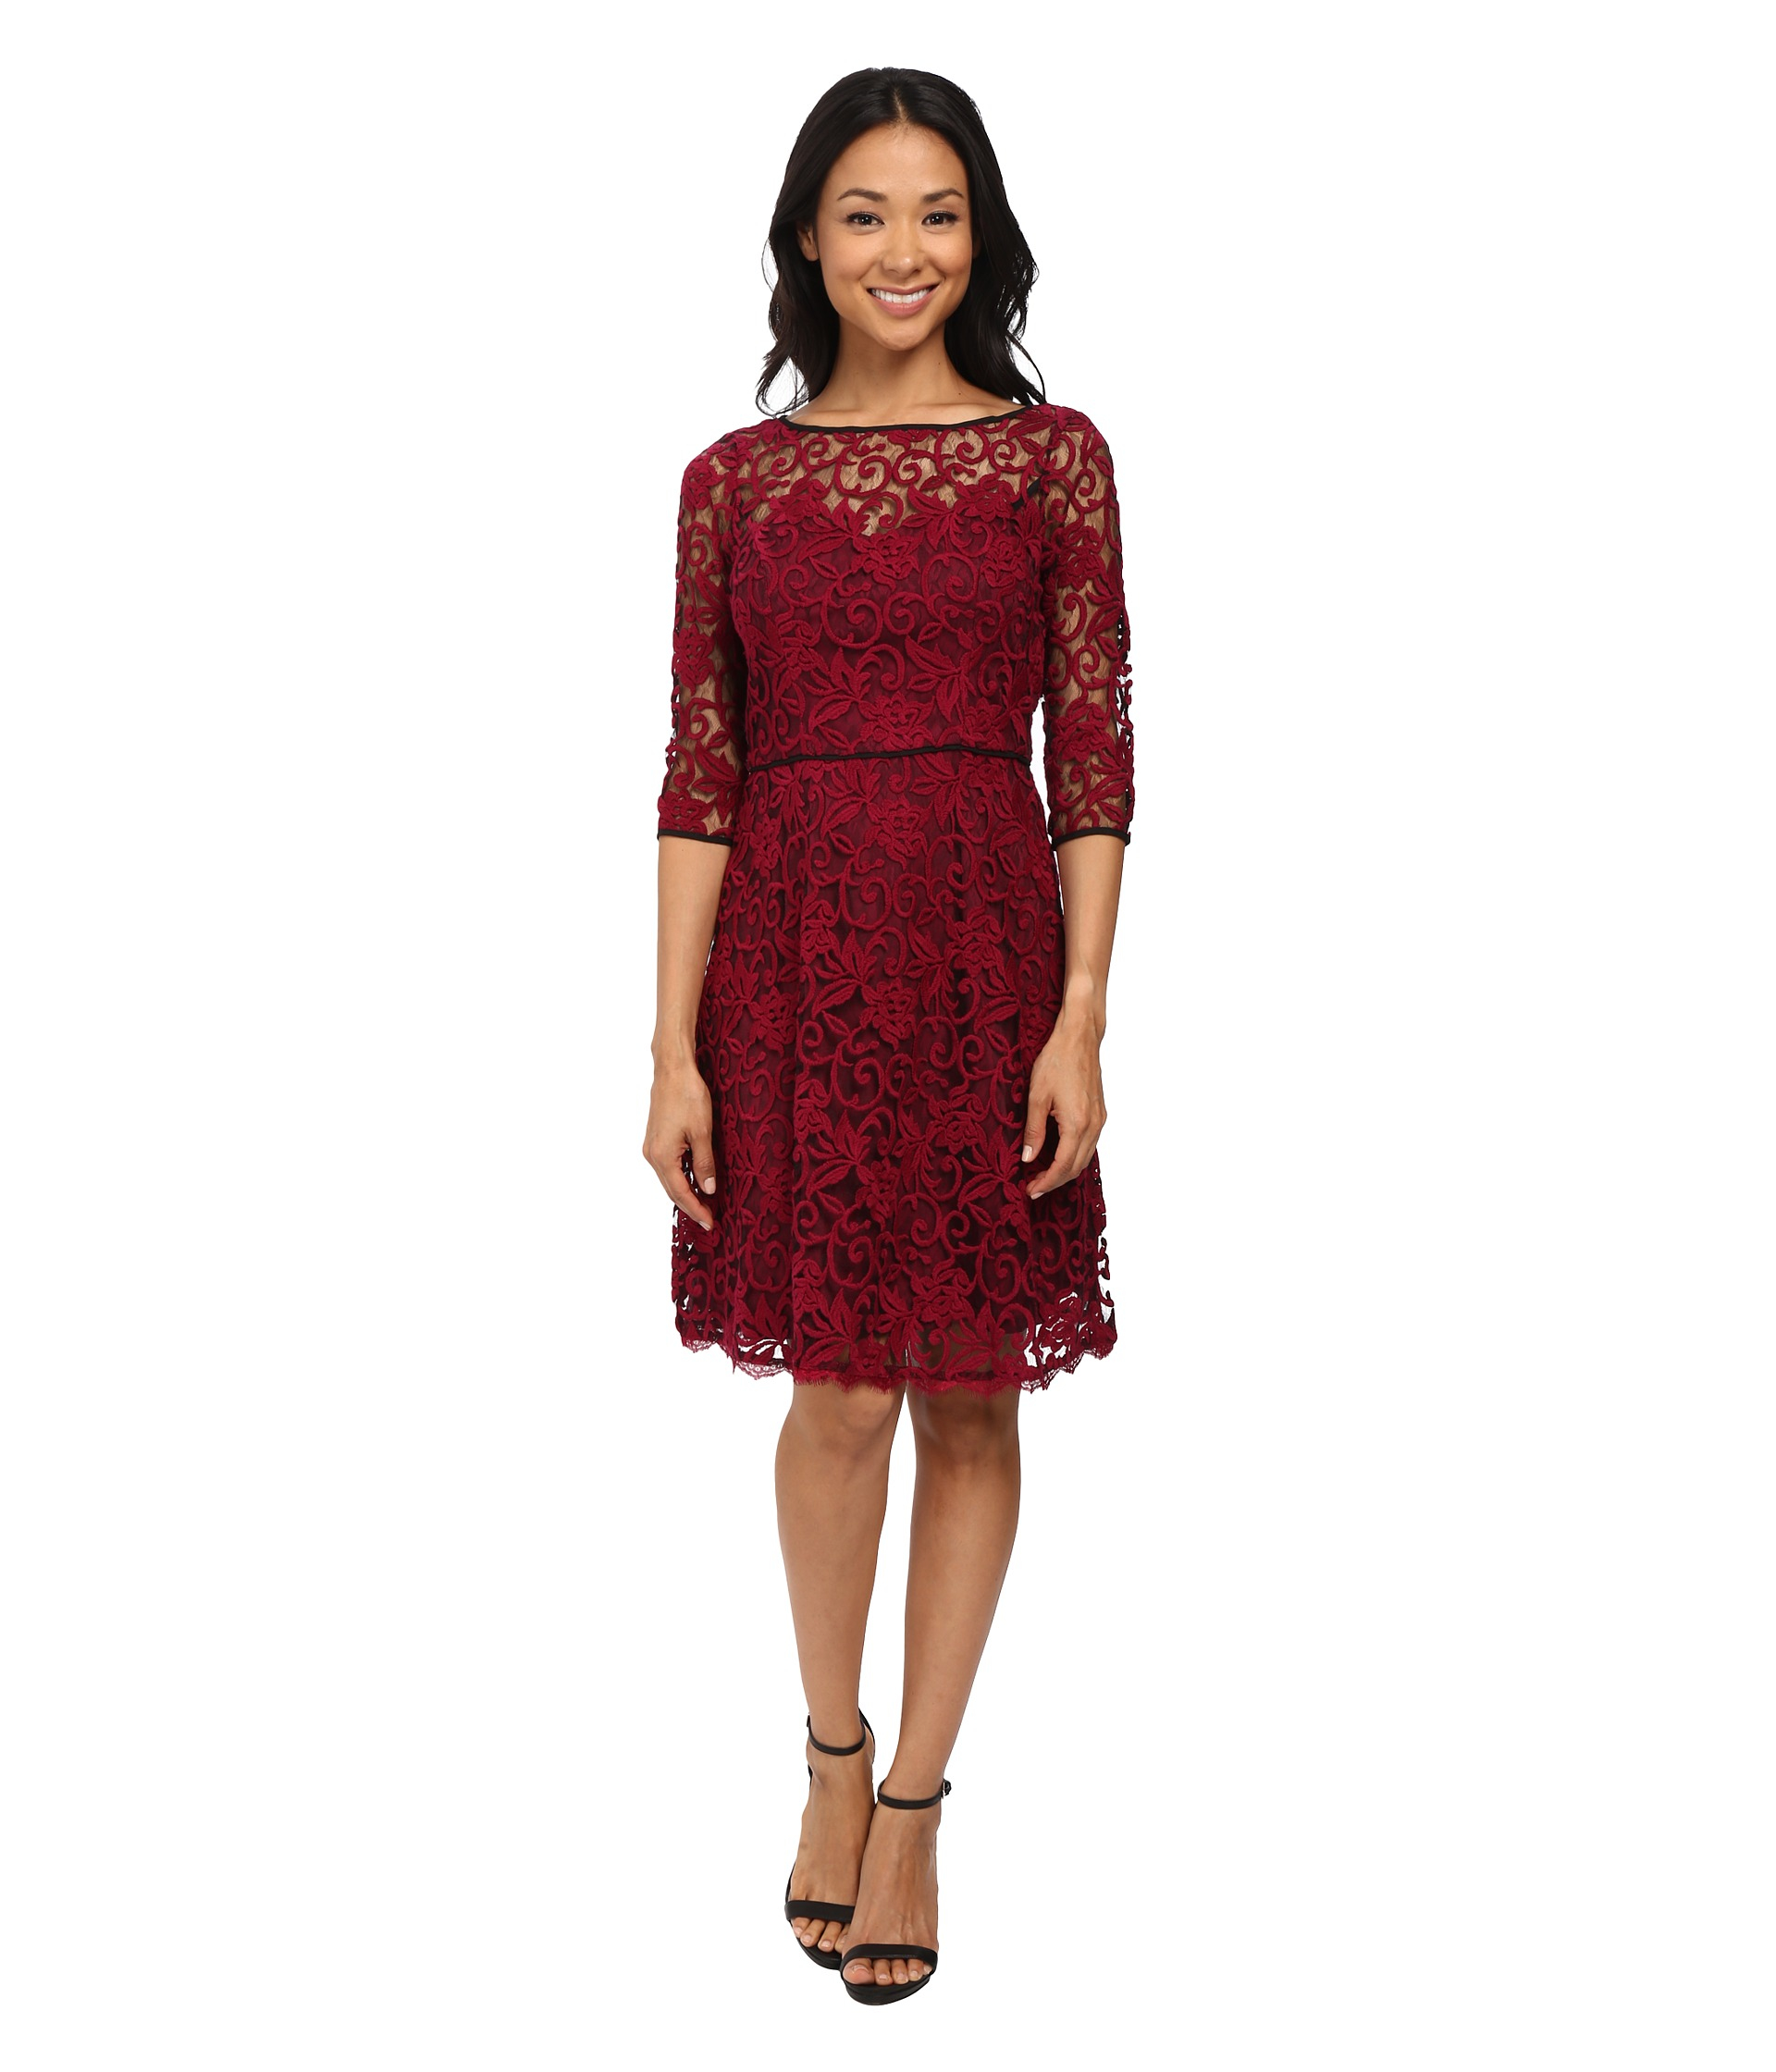 ec9723511d Lord And Taylor Lace Cocktail Dresses - Data Dynamic AG